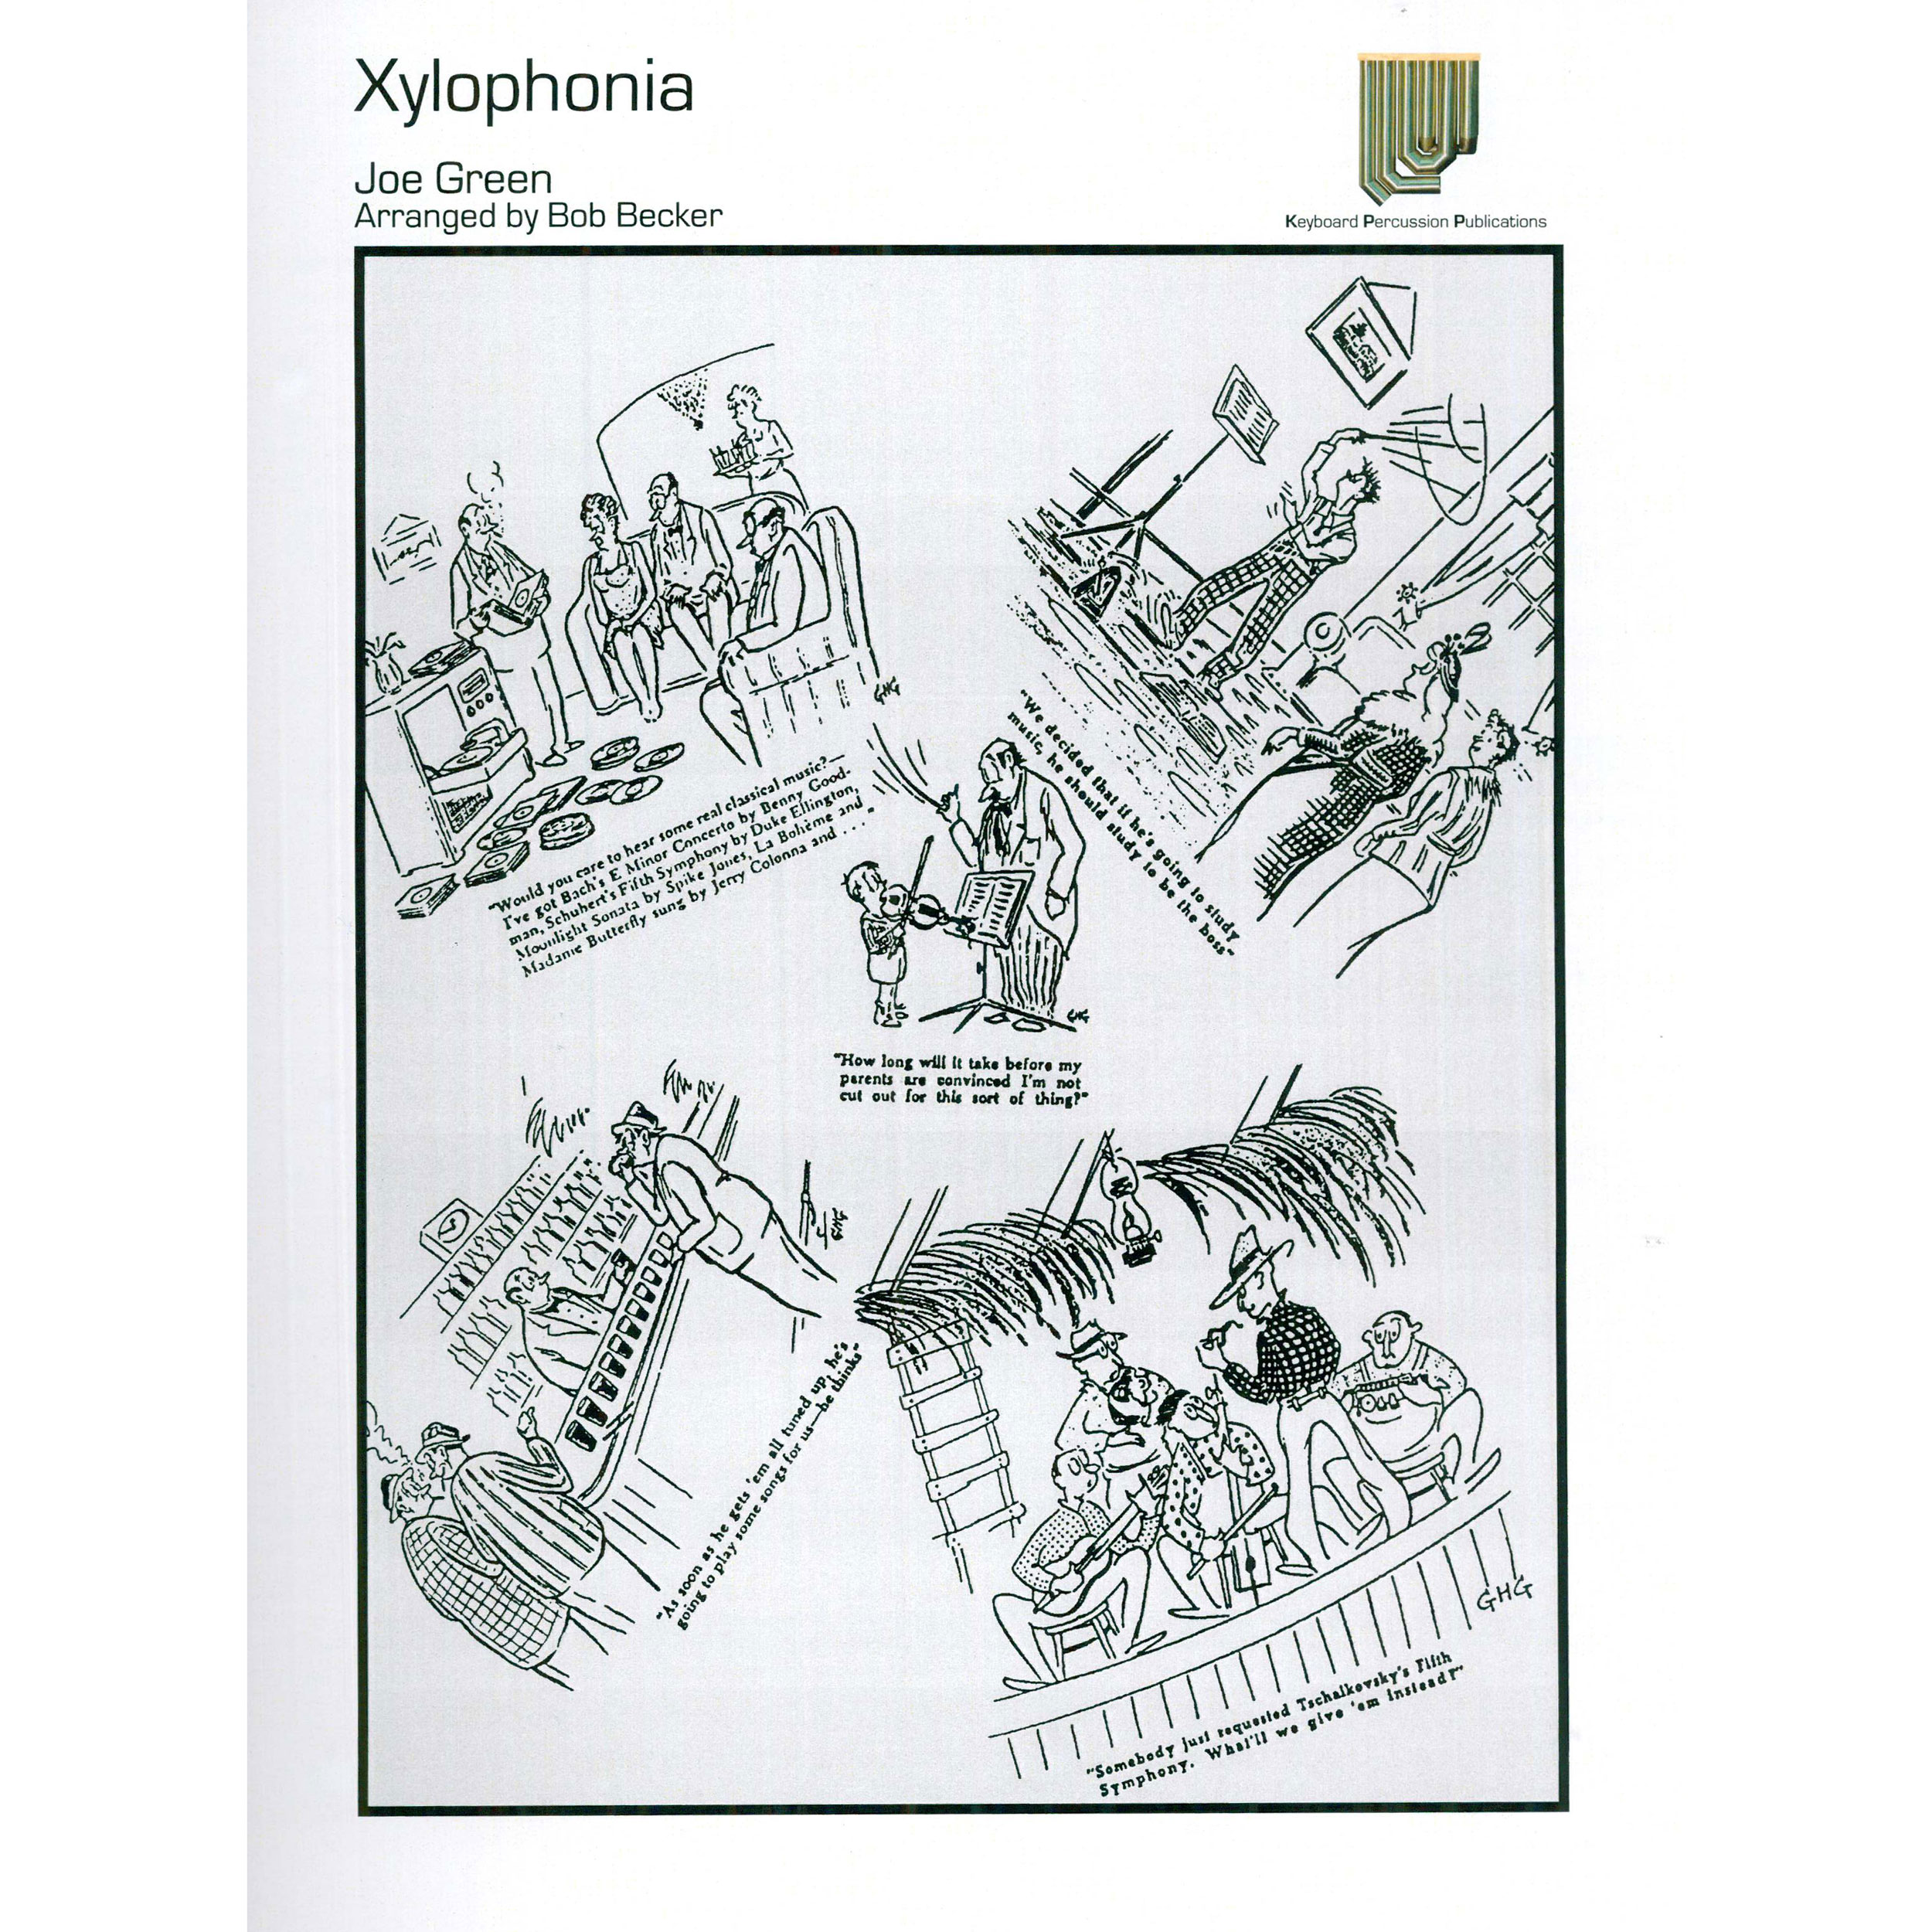 Xylophonia by Joe Green arr. Bob Becker